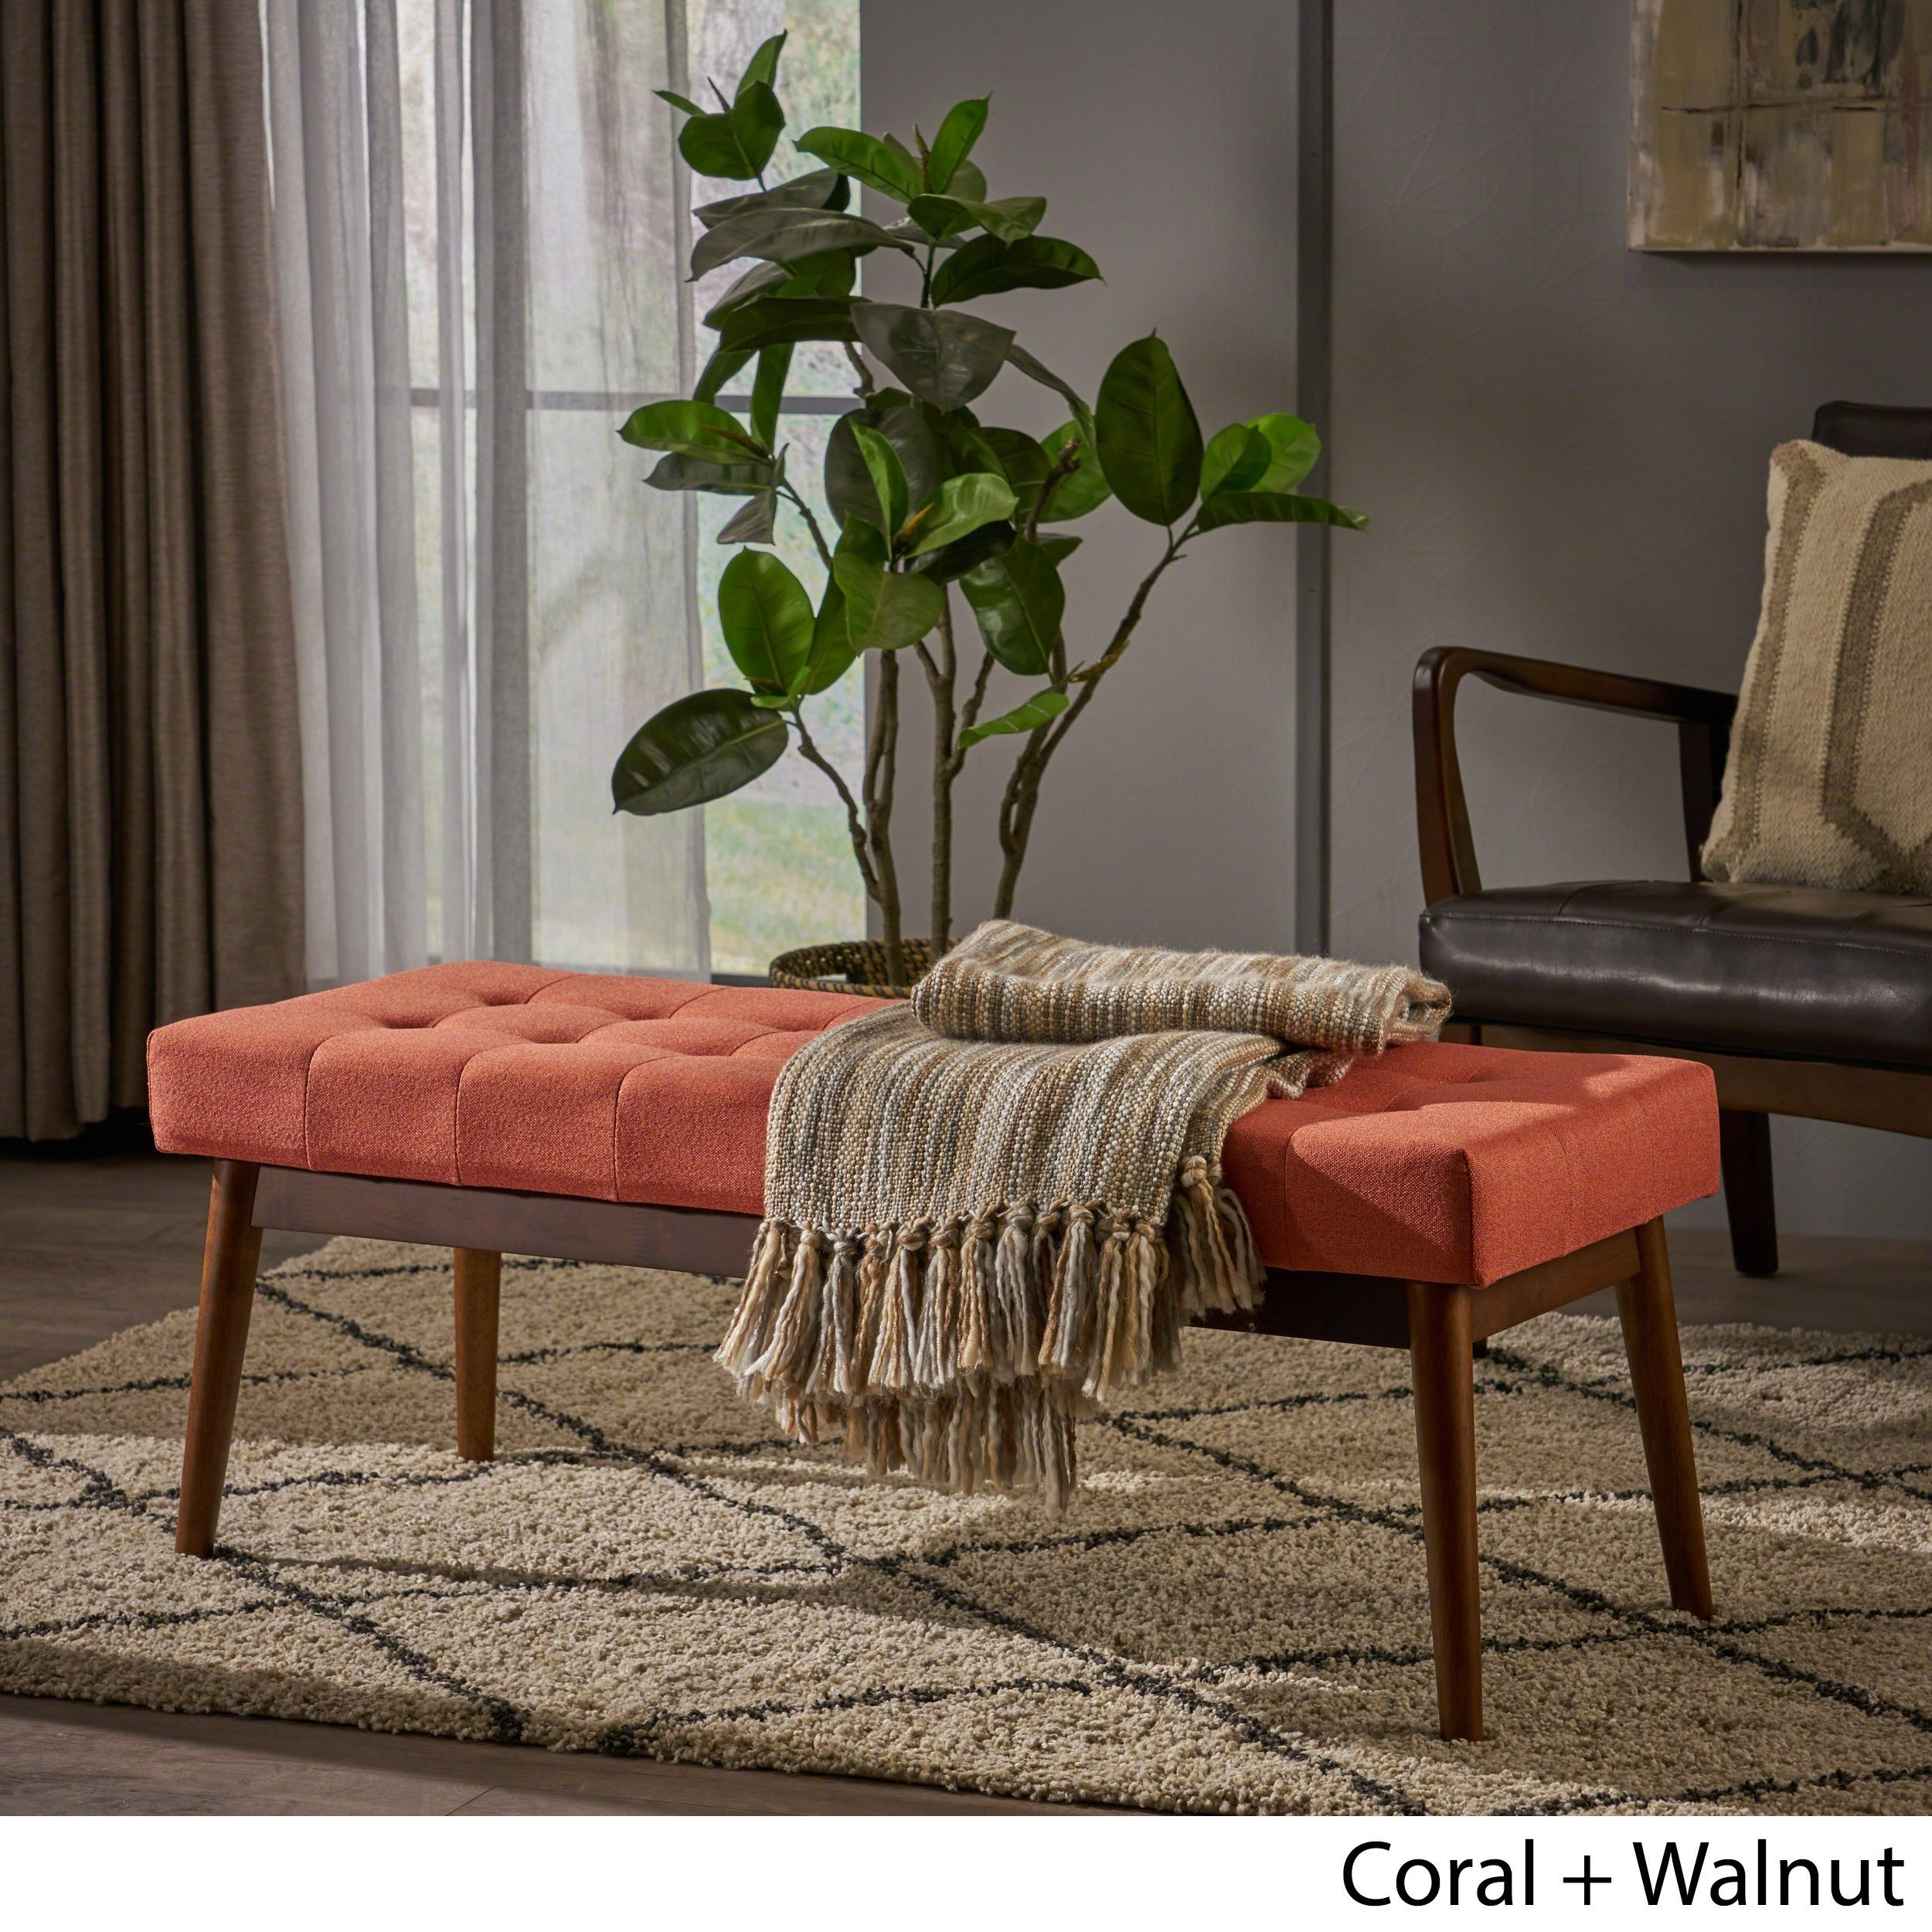 Cool Flavel Mid Century Tufted Fabric Ottoman Bench By Christopher Knight Home Beatyapartments Chair Design Images Beatyapartmentscom